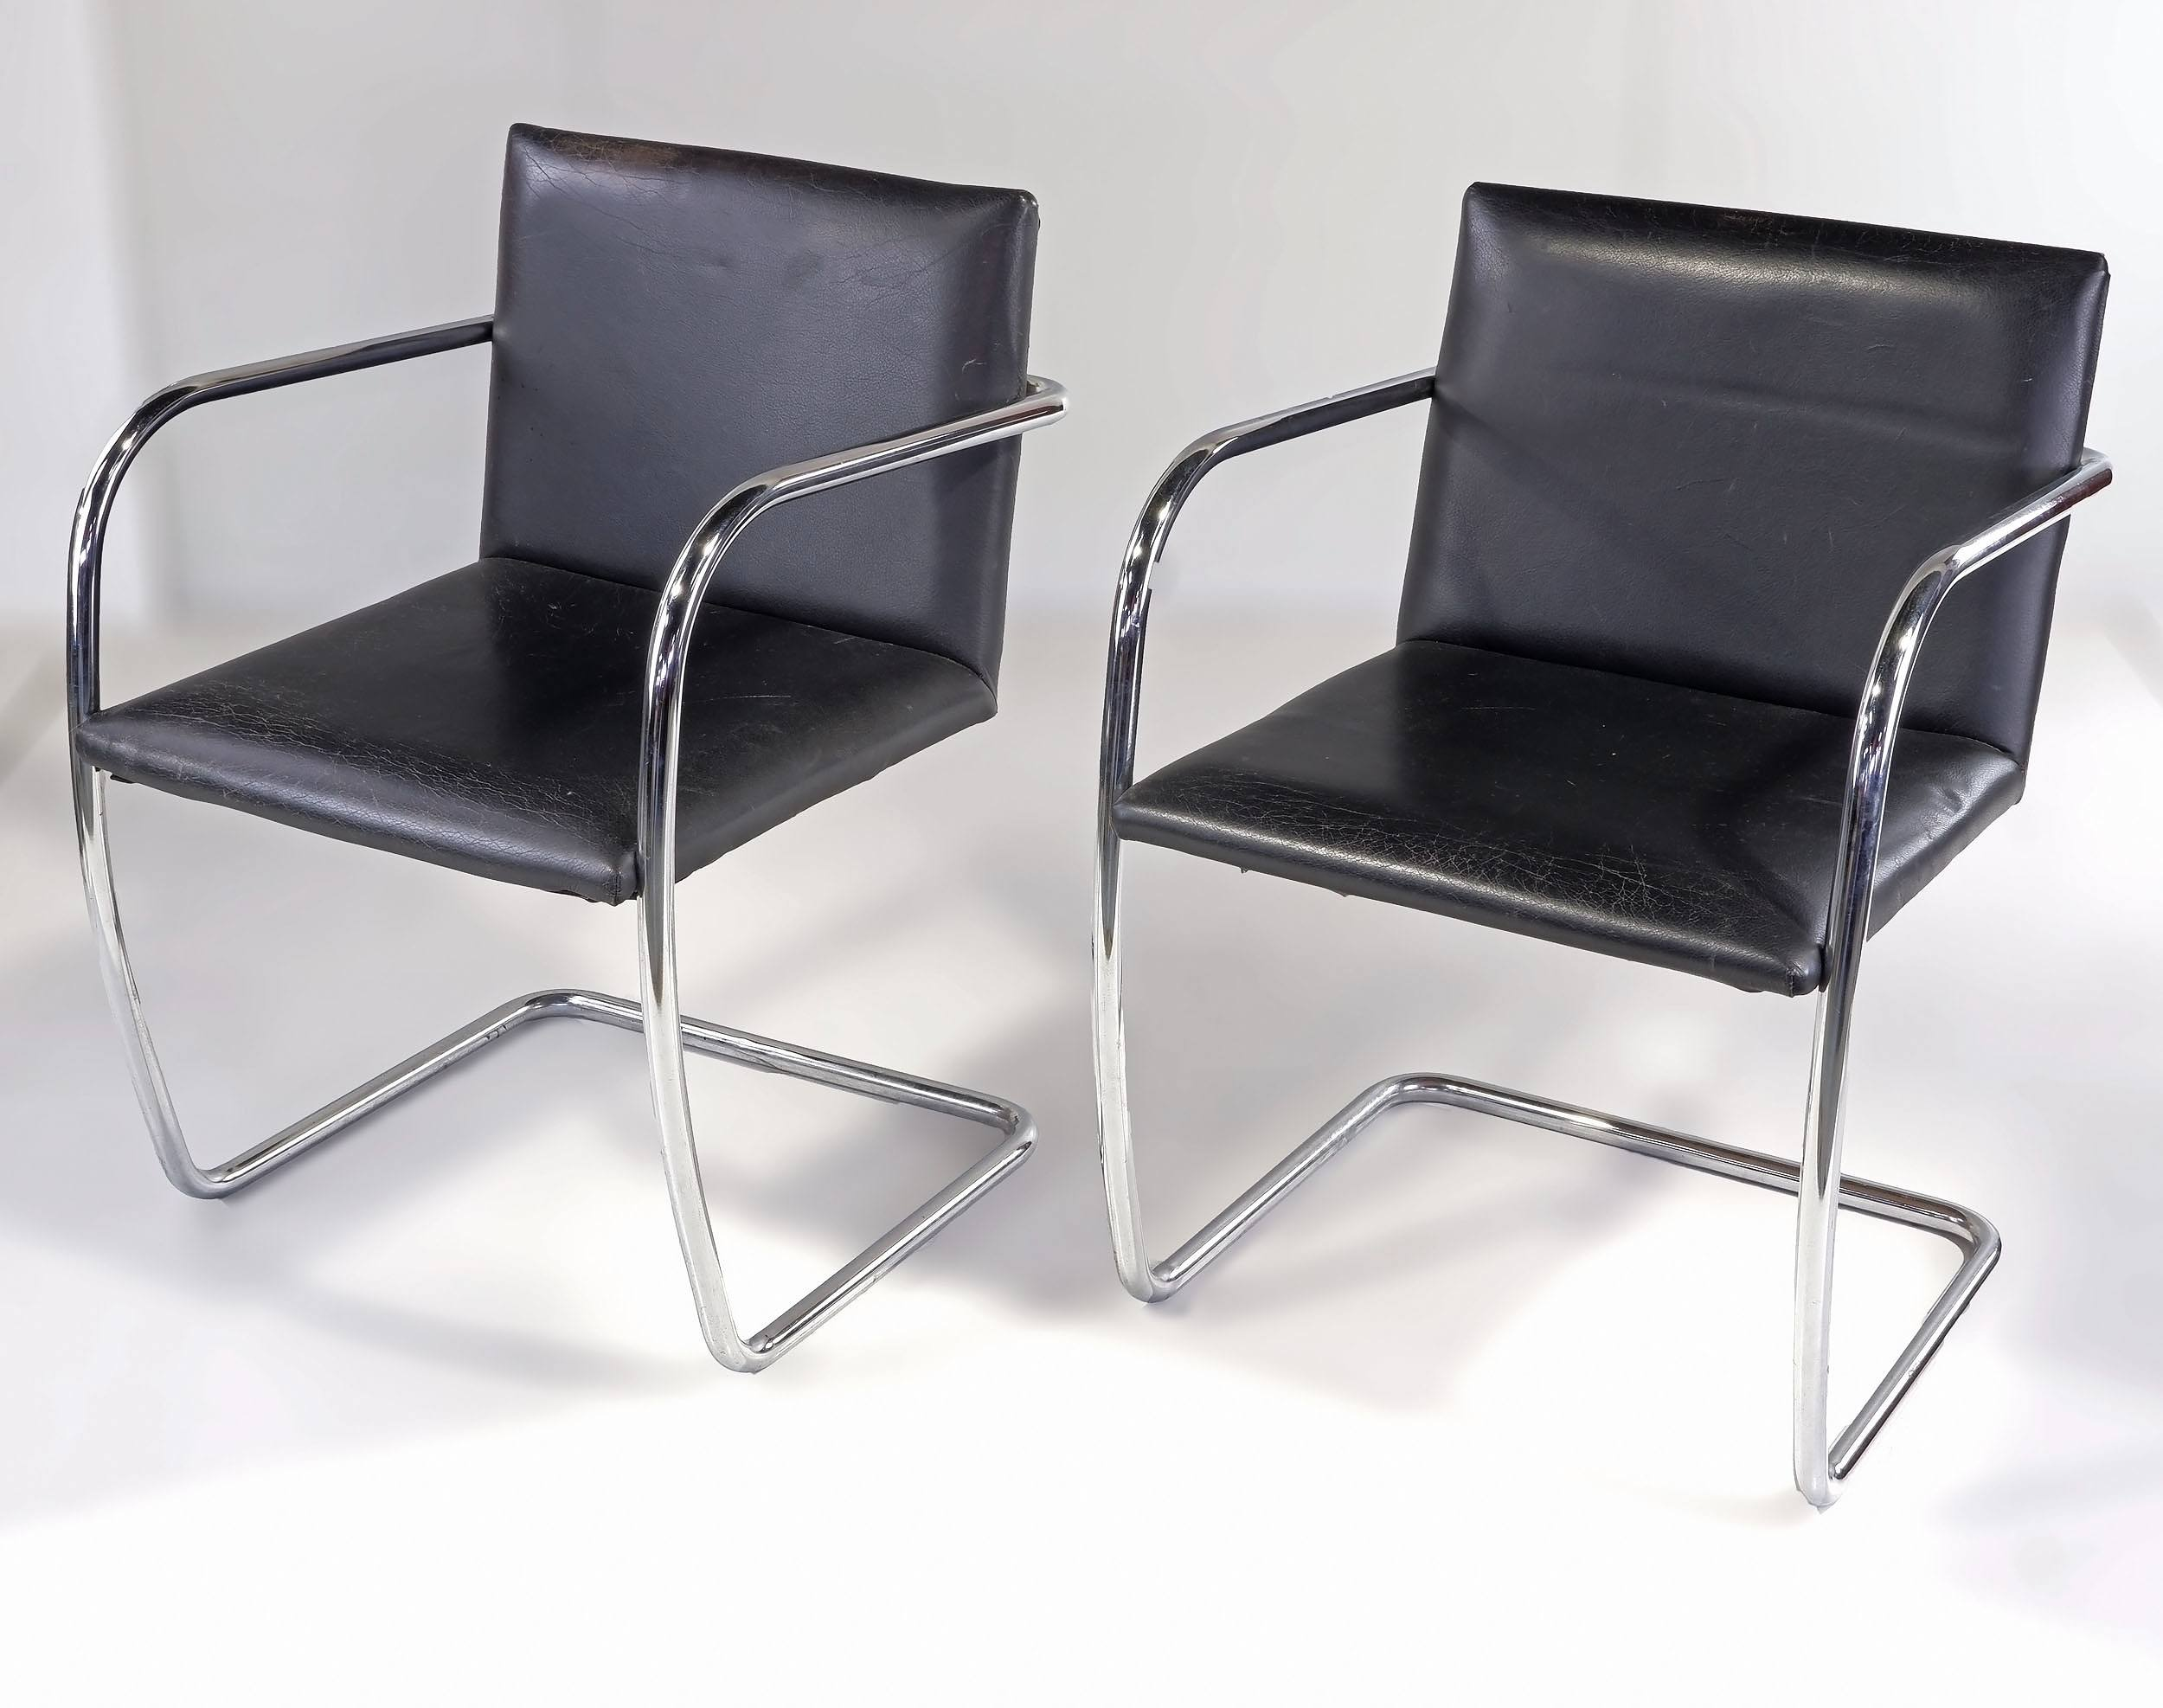 'Pair of Vintage Chromed Tubular Steel and Leather Brno Cantilever Armchairs Designed by Mies Van Der Rohe'